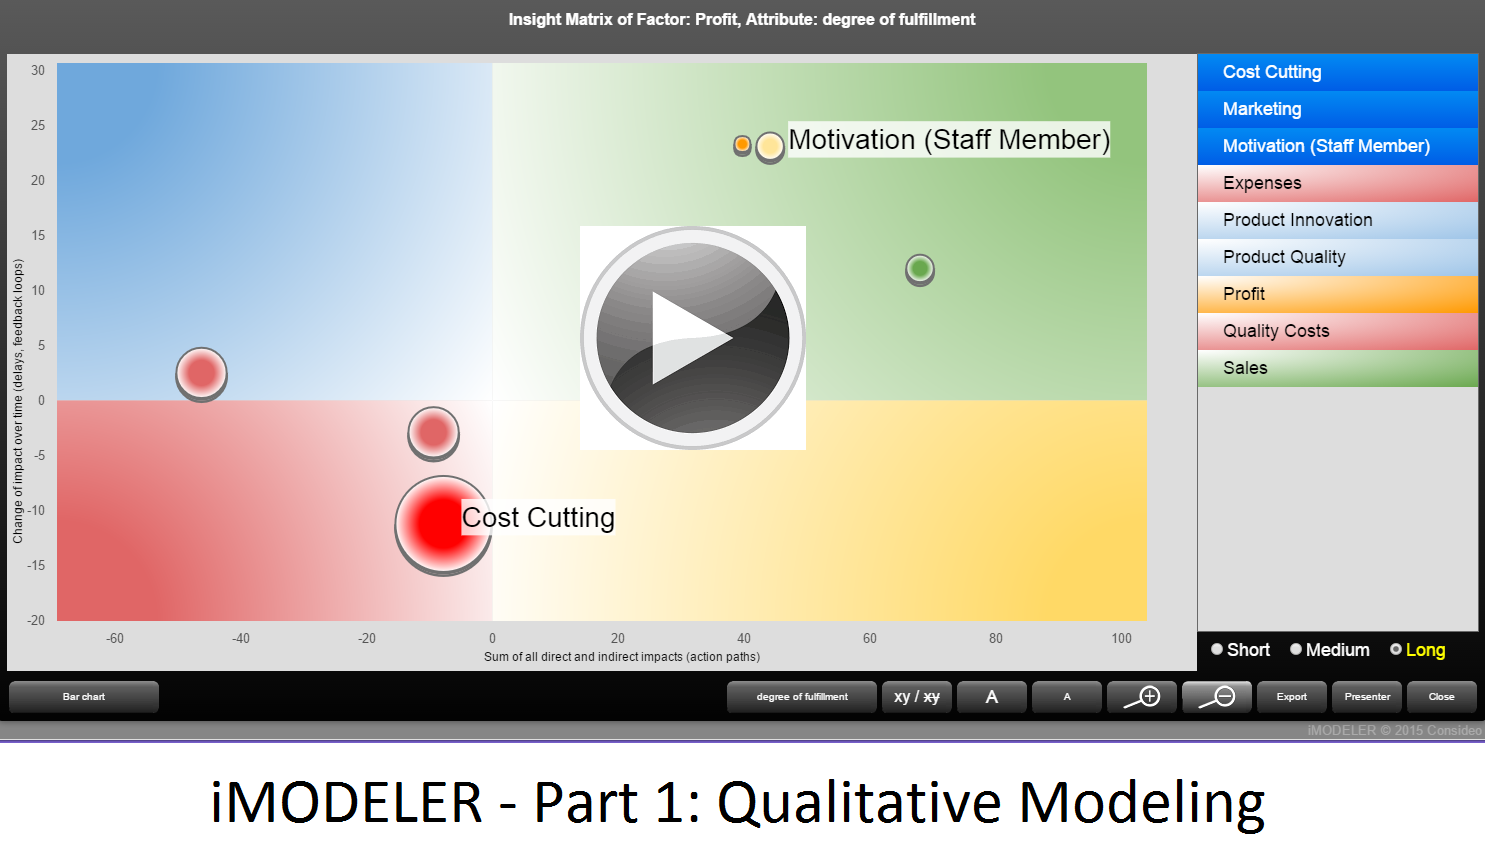 iMODELER - Part 1: Qualitative Modeling (Systems Thinking)